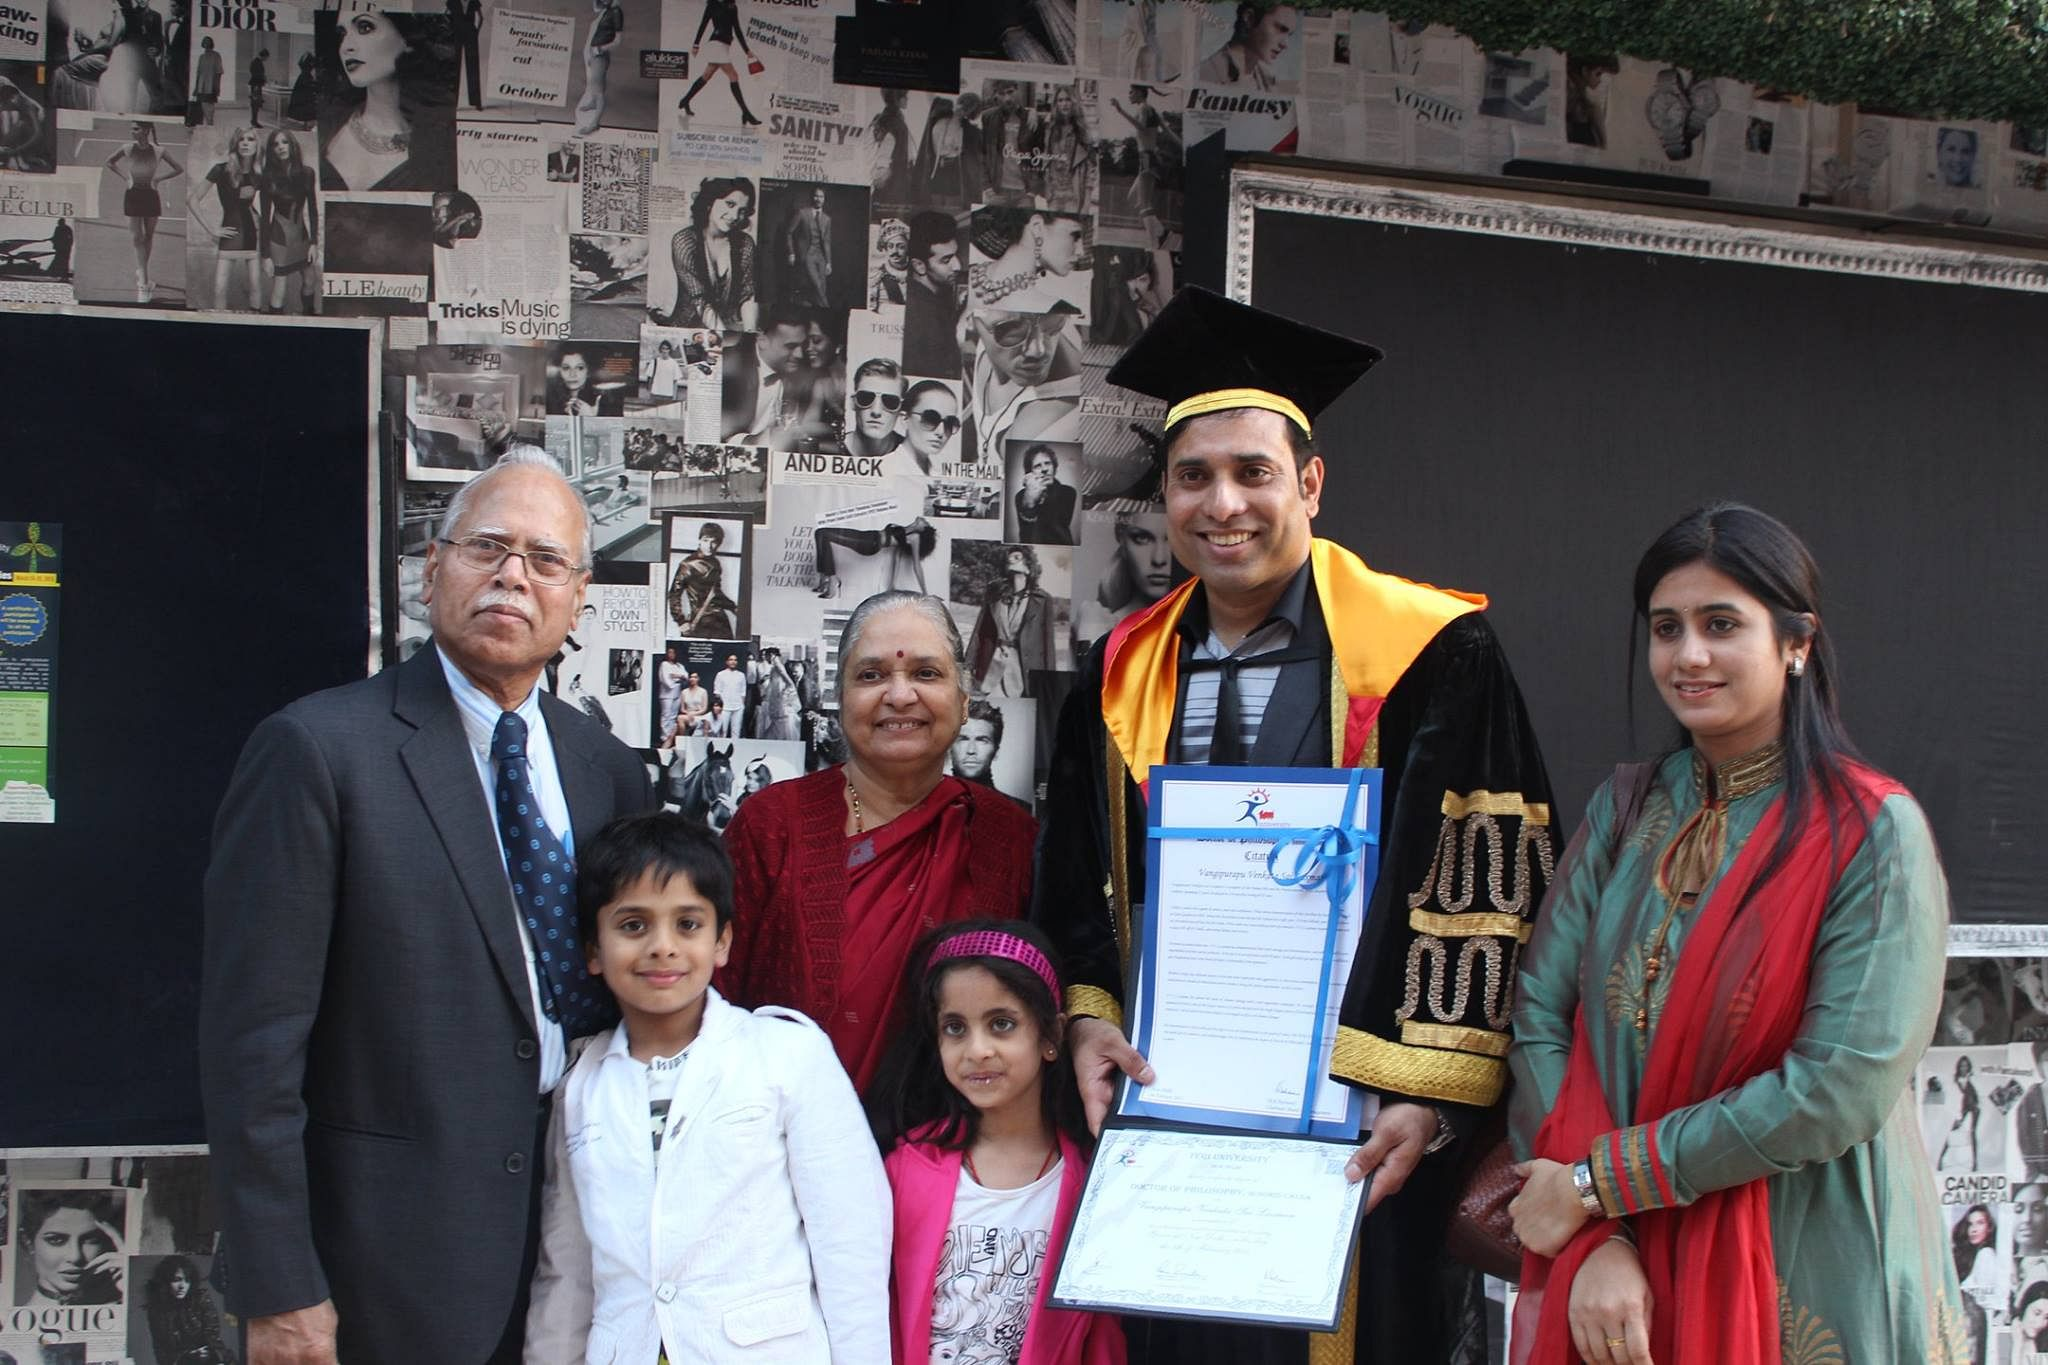 VVS_Laxman_with_his_family_at_Teri_University,_receiving_the_doctoral_degree.